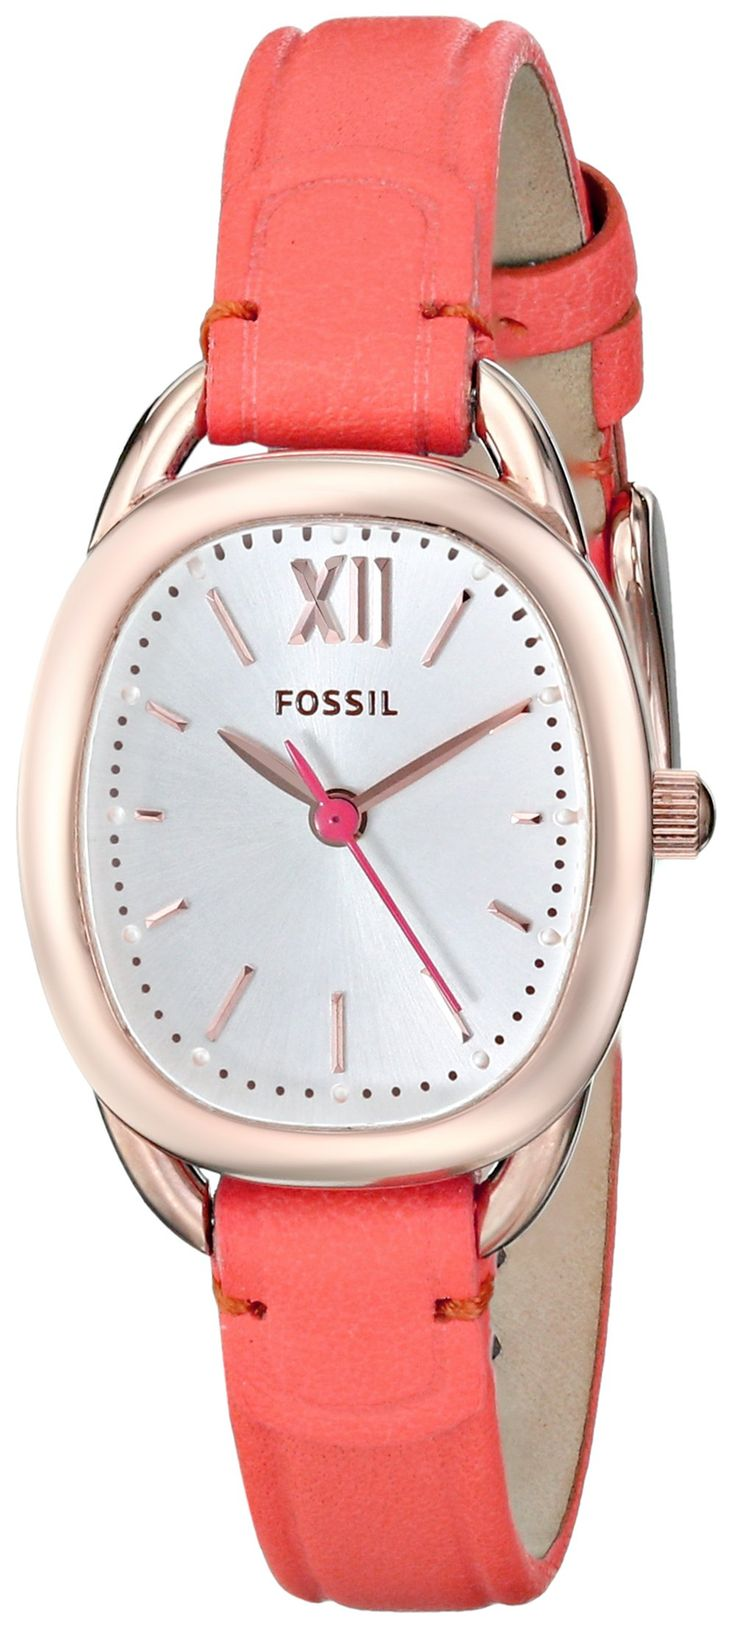 34 Best Fashion Images On Pinterest Womens Watches Female Fossil Es3816 Original Amazoncom Es3580 Sculptor Three Hand Leather Watch Lipstick Coral Red